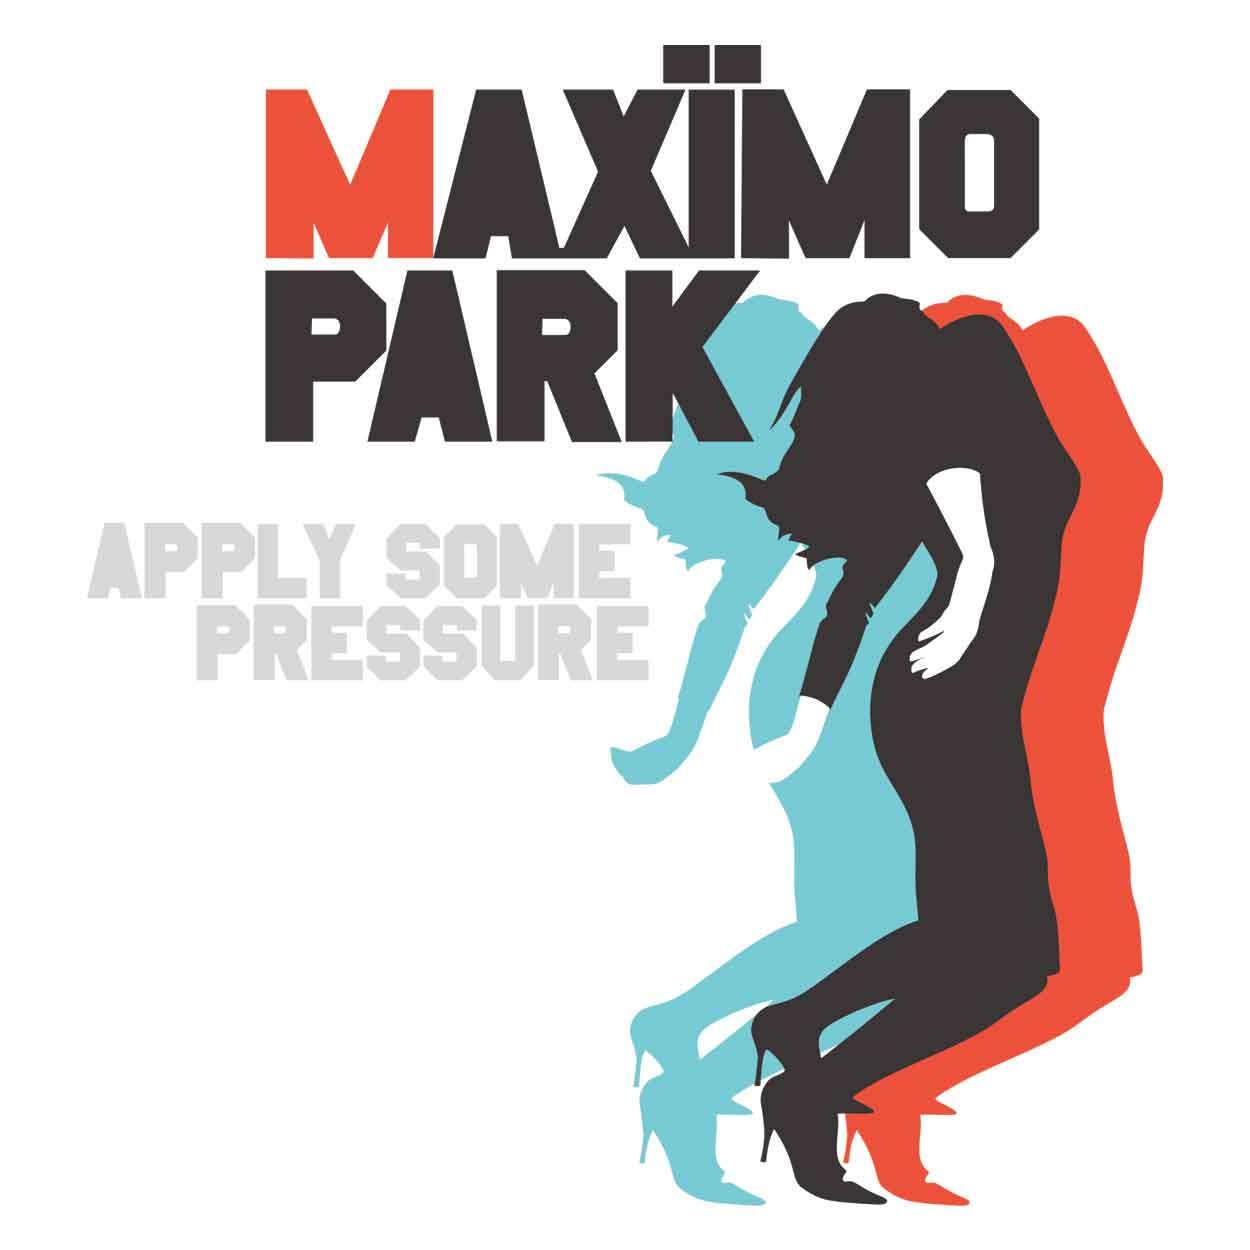 Camiseta - Apply Some Pressure - Maximo Park - Masculino